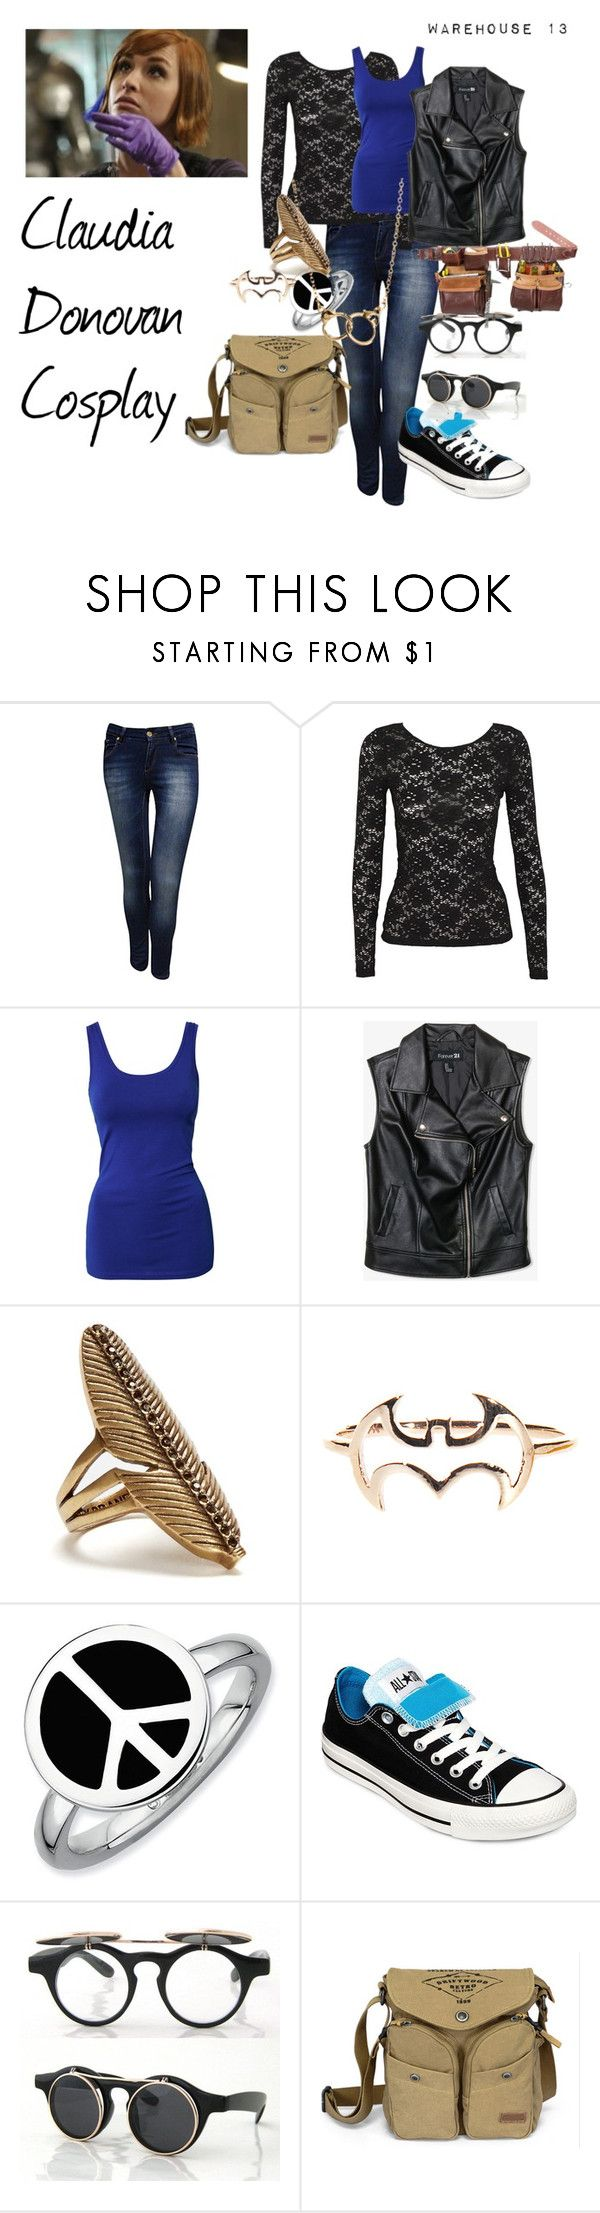 """""""Claudia Donovan Cosplay"""" by fallonskywalker ❤ liked on Polyvore featuring Jane Norman, Alice In The Eve, Modström, Forever 21, Lucky Brand, Expressions, Converse, Retrò, ASOS and Warehouse"""